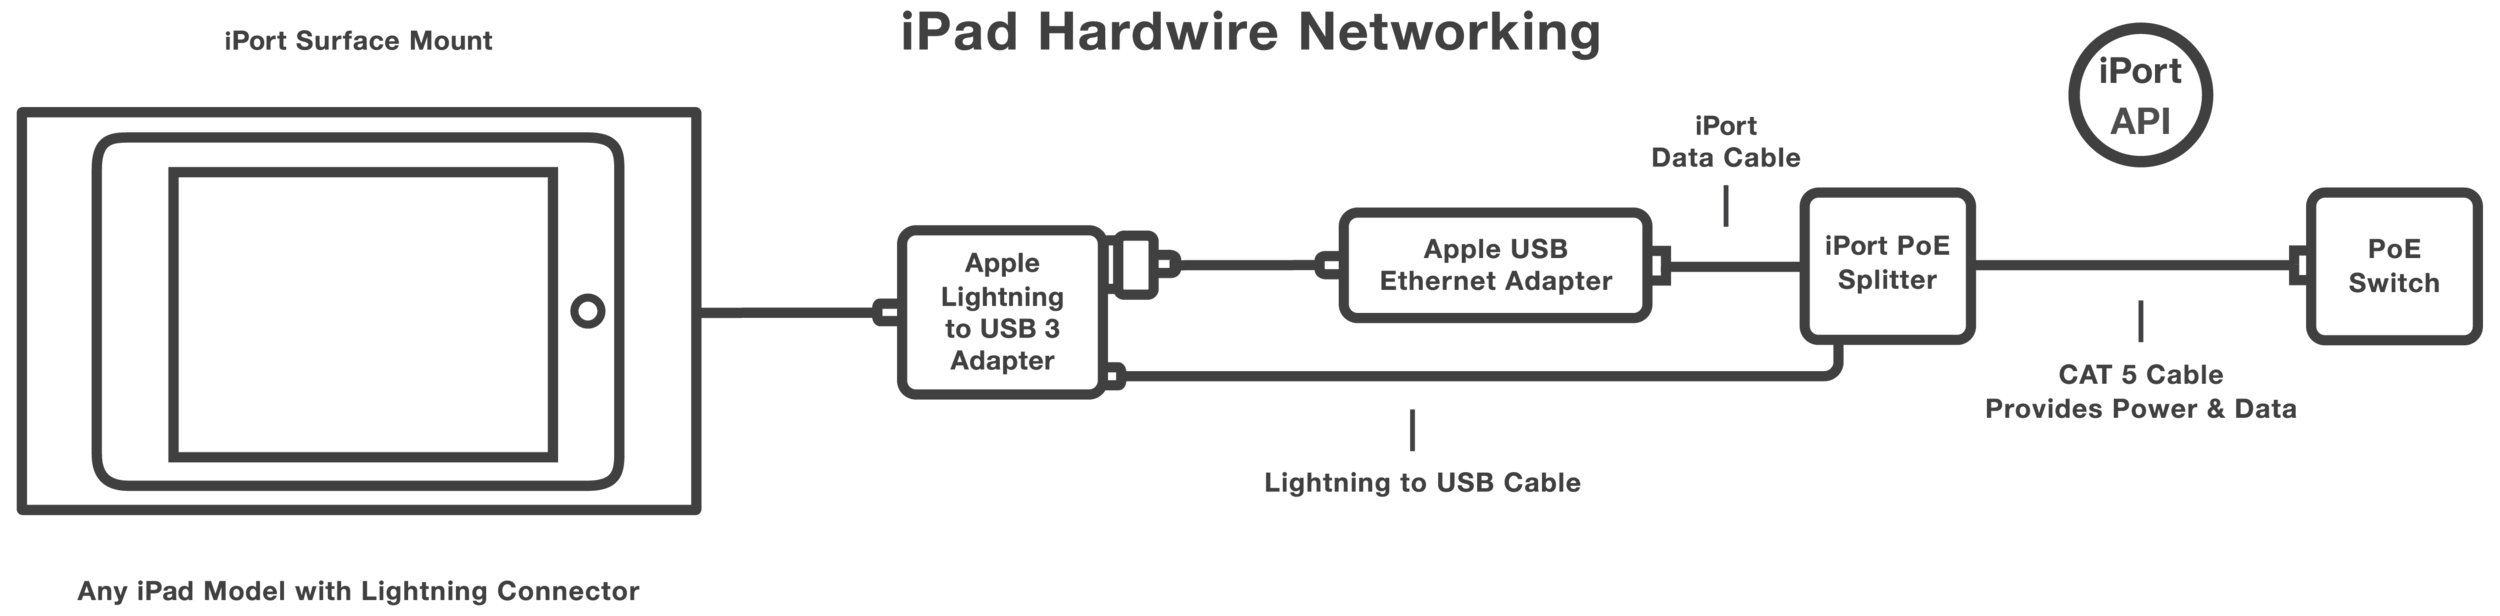 iPad Hardwire Networking_30in-01.png